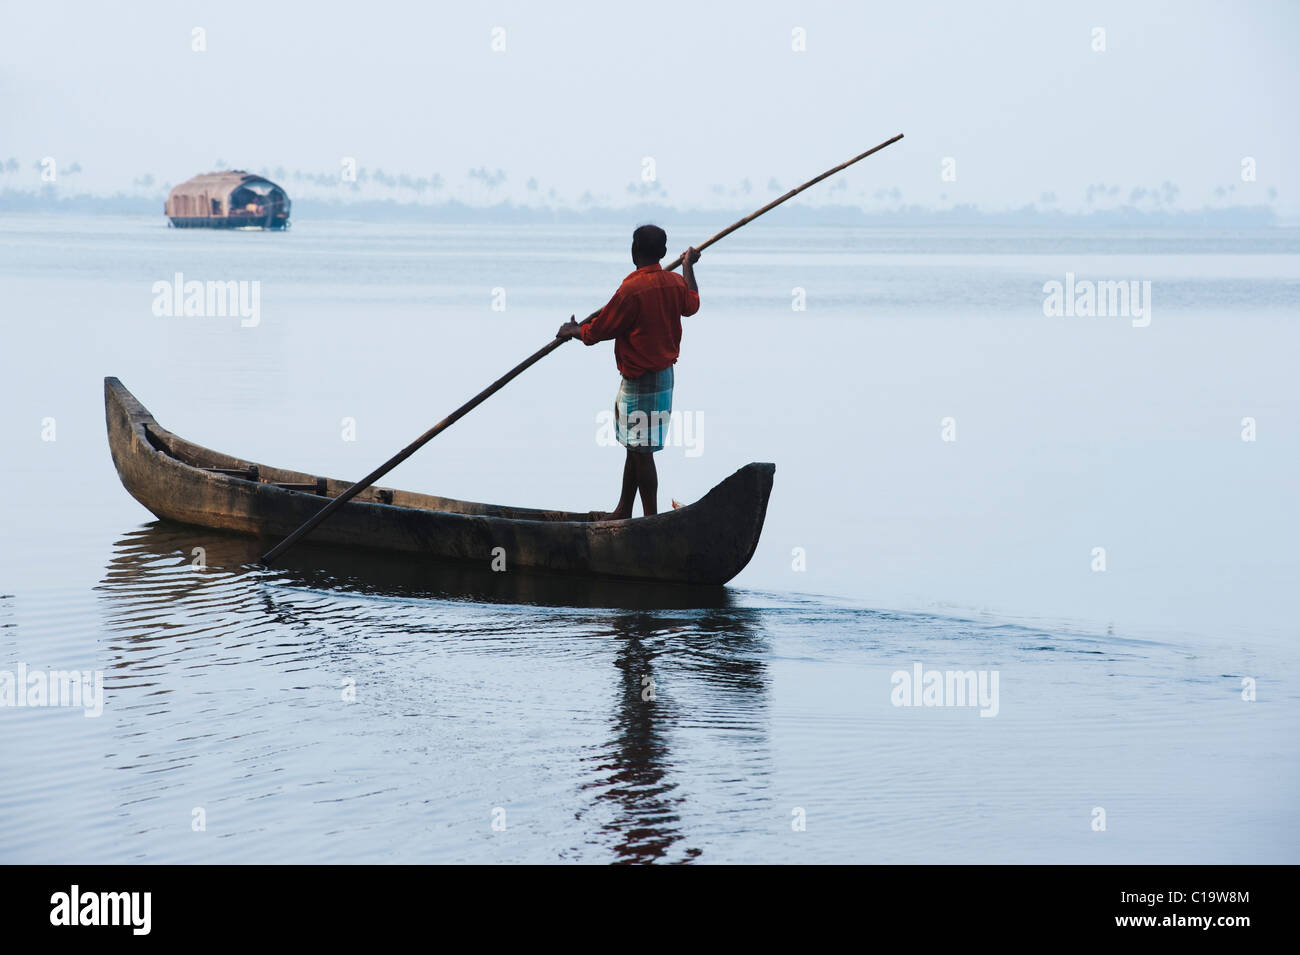 Man rowing a boat in a lagoon, Kerala Backwaters, Alleppey, Alappuzha District, Kerala, India - Stock Image